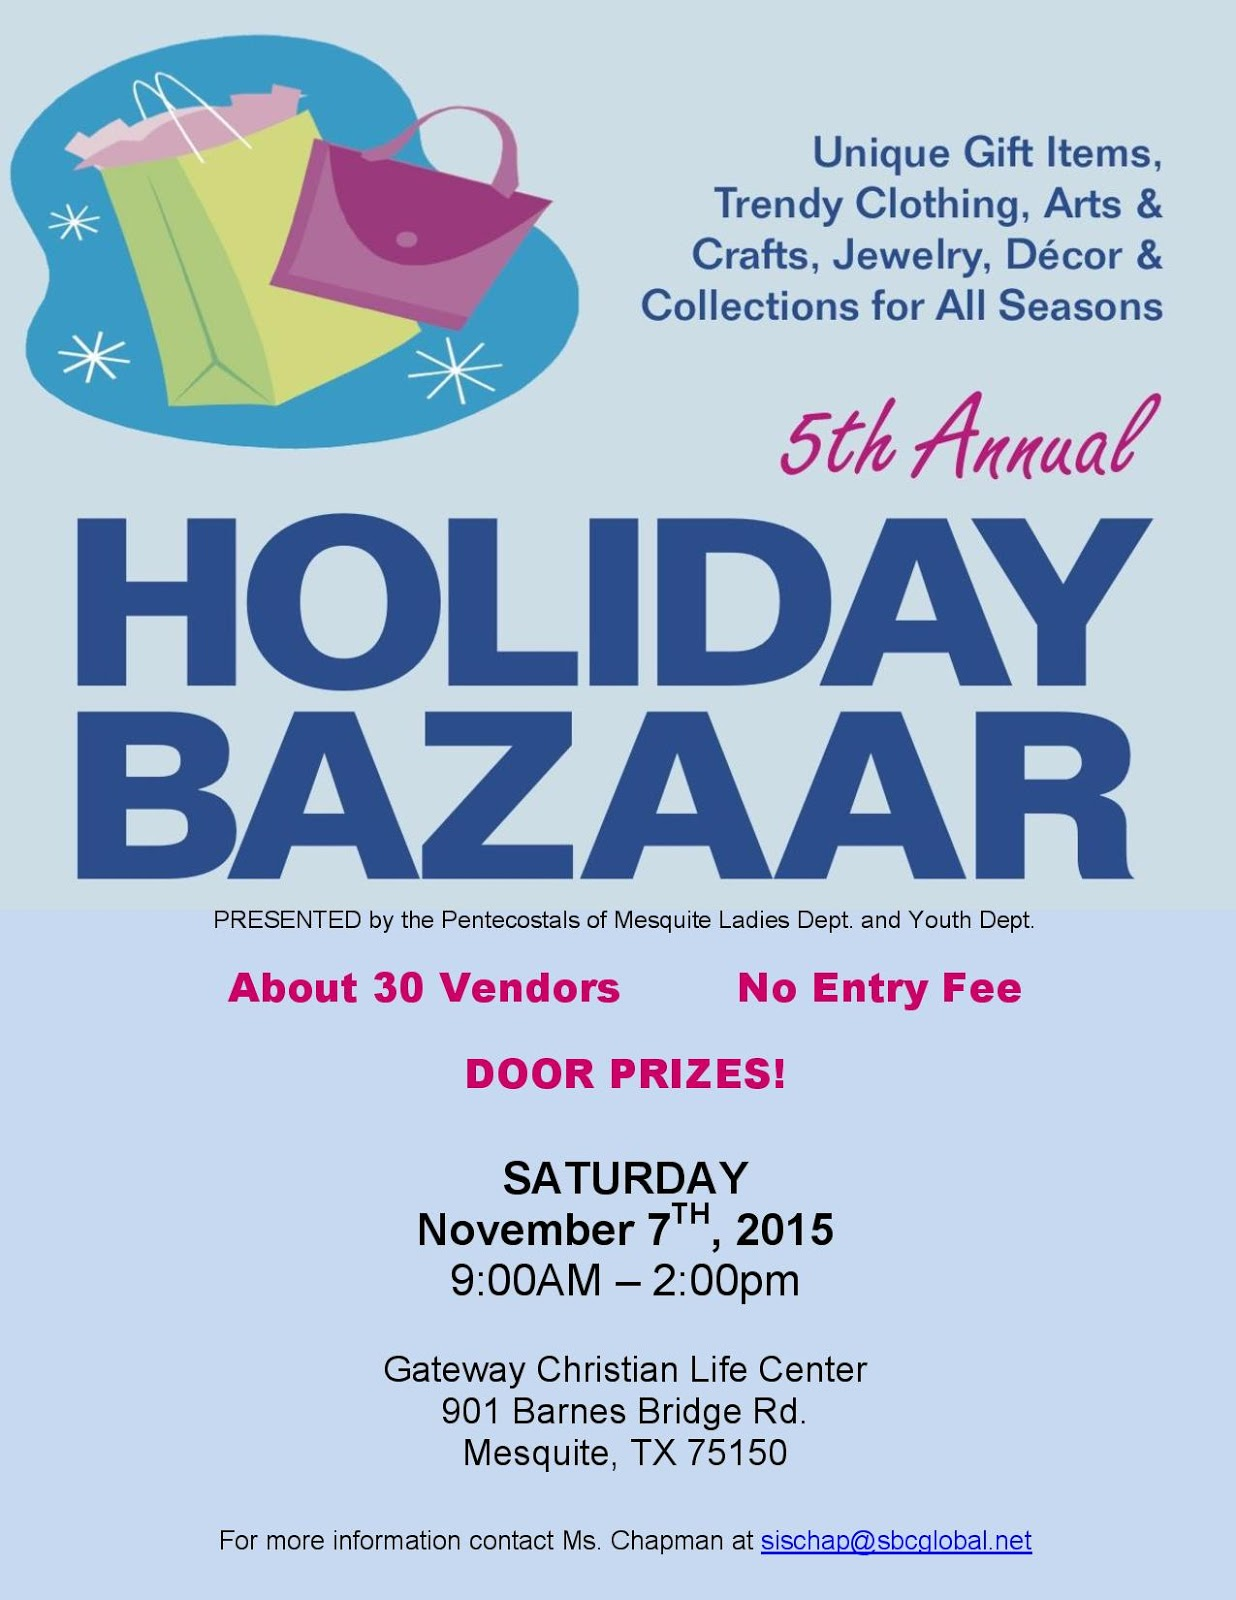 5th annual holiday bazaar at gateway life center 901 barnes bridge rd mesquite tx 75150